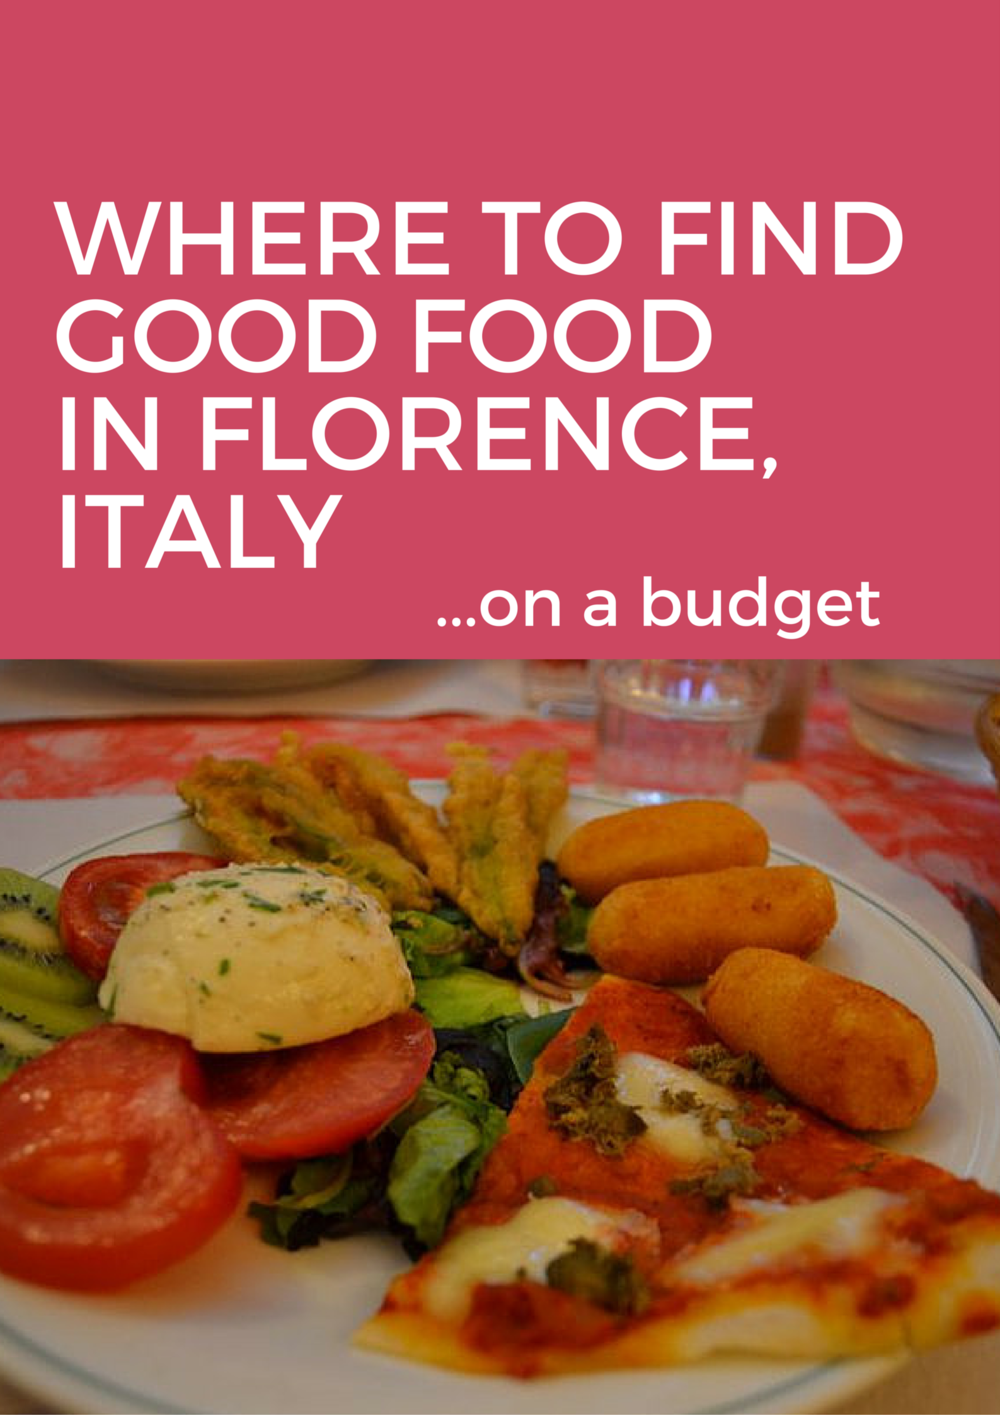 Where to find the best food in Florence, Italy on a budget! Top travel food budget recommendations from a girl who used to live there